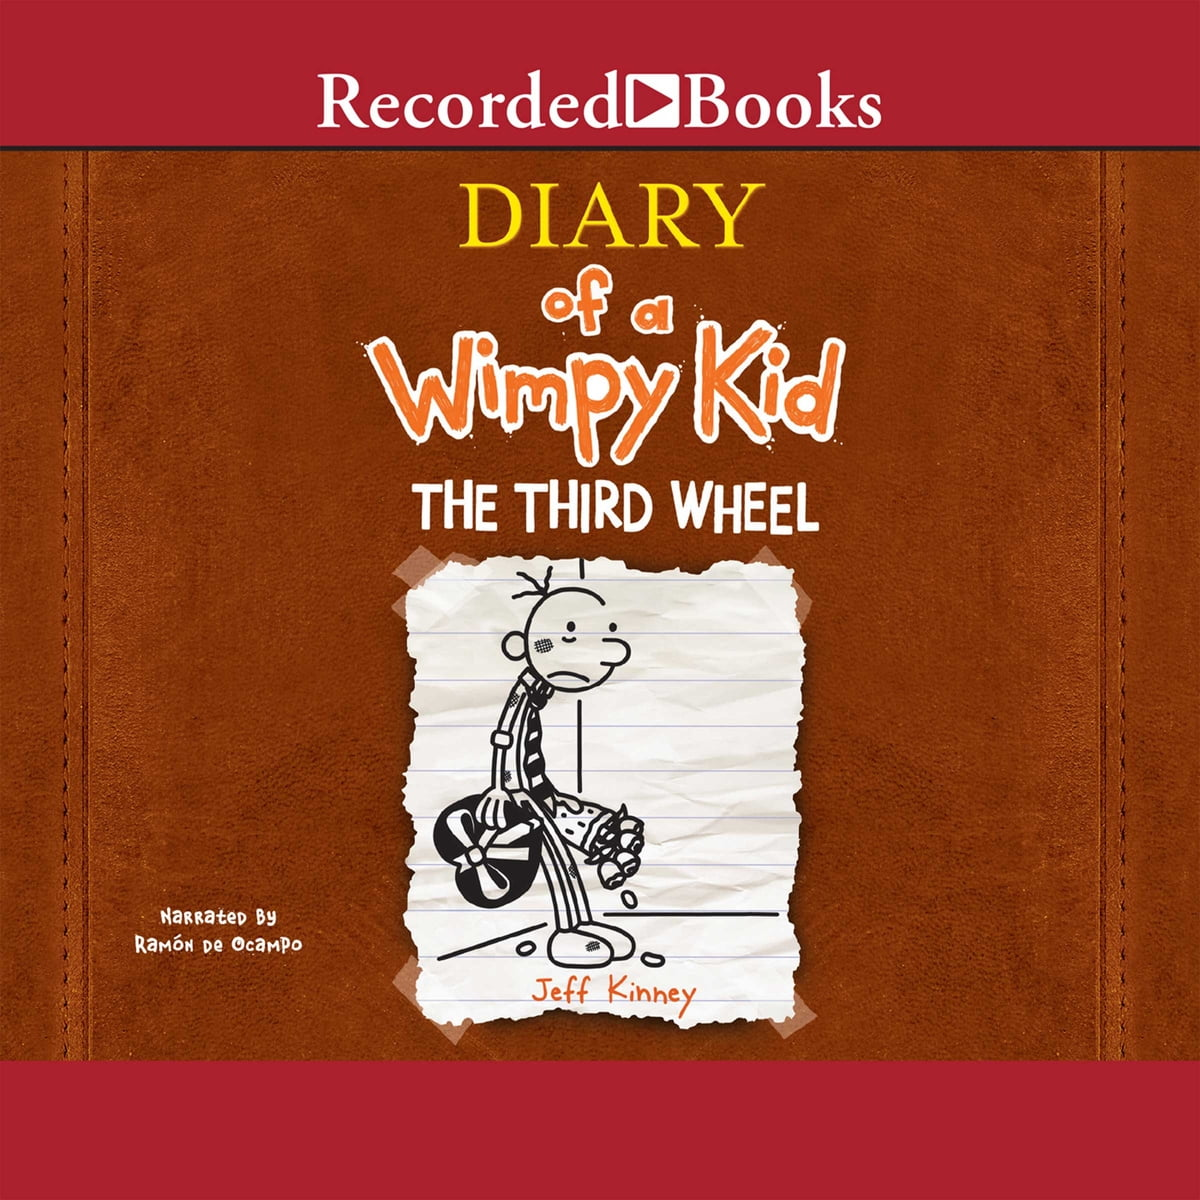 Diary of a wimpy kid the third wheel audiobook by jeff kinney diary of a wimpy kid the third wheel audiobook by jeff kinney 9781470331887 rakuten kobo solutioingenieria Images